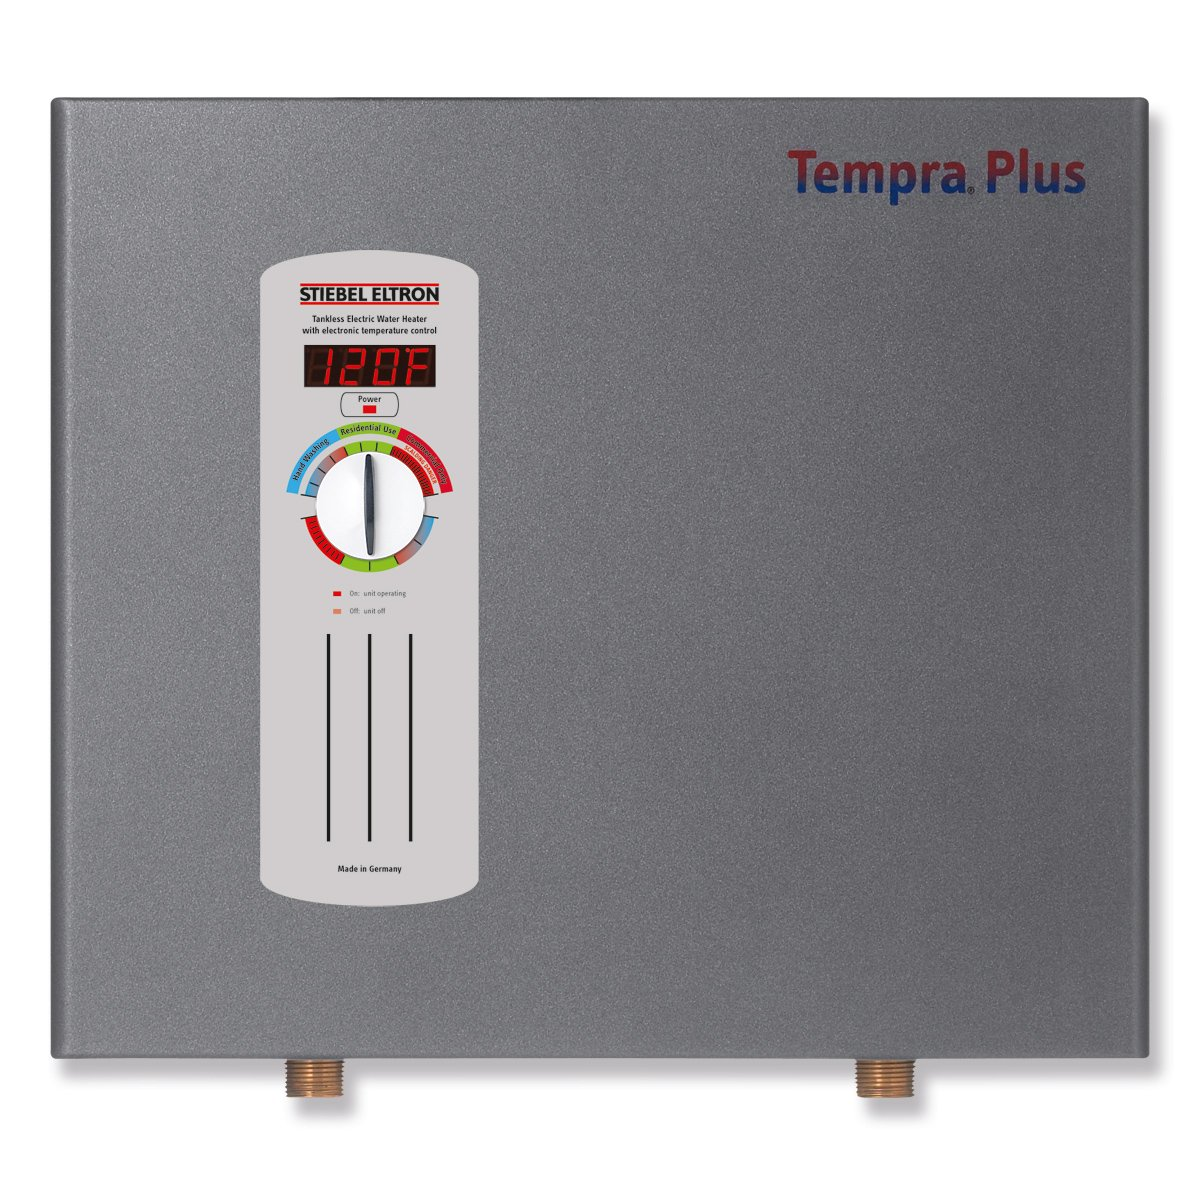 Pros and cons of gas tankless water heaters - Stiebel Eltron Tempra Plus 24 Kw Tankless Electric Water Heater With Self Modulating Power Technology Advanced Flow Control Amazon Com